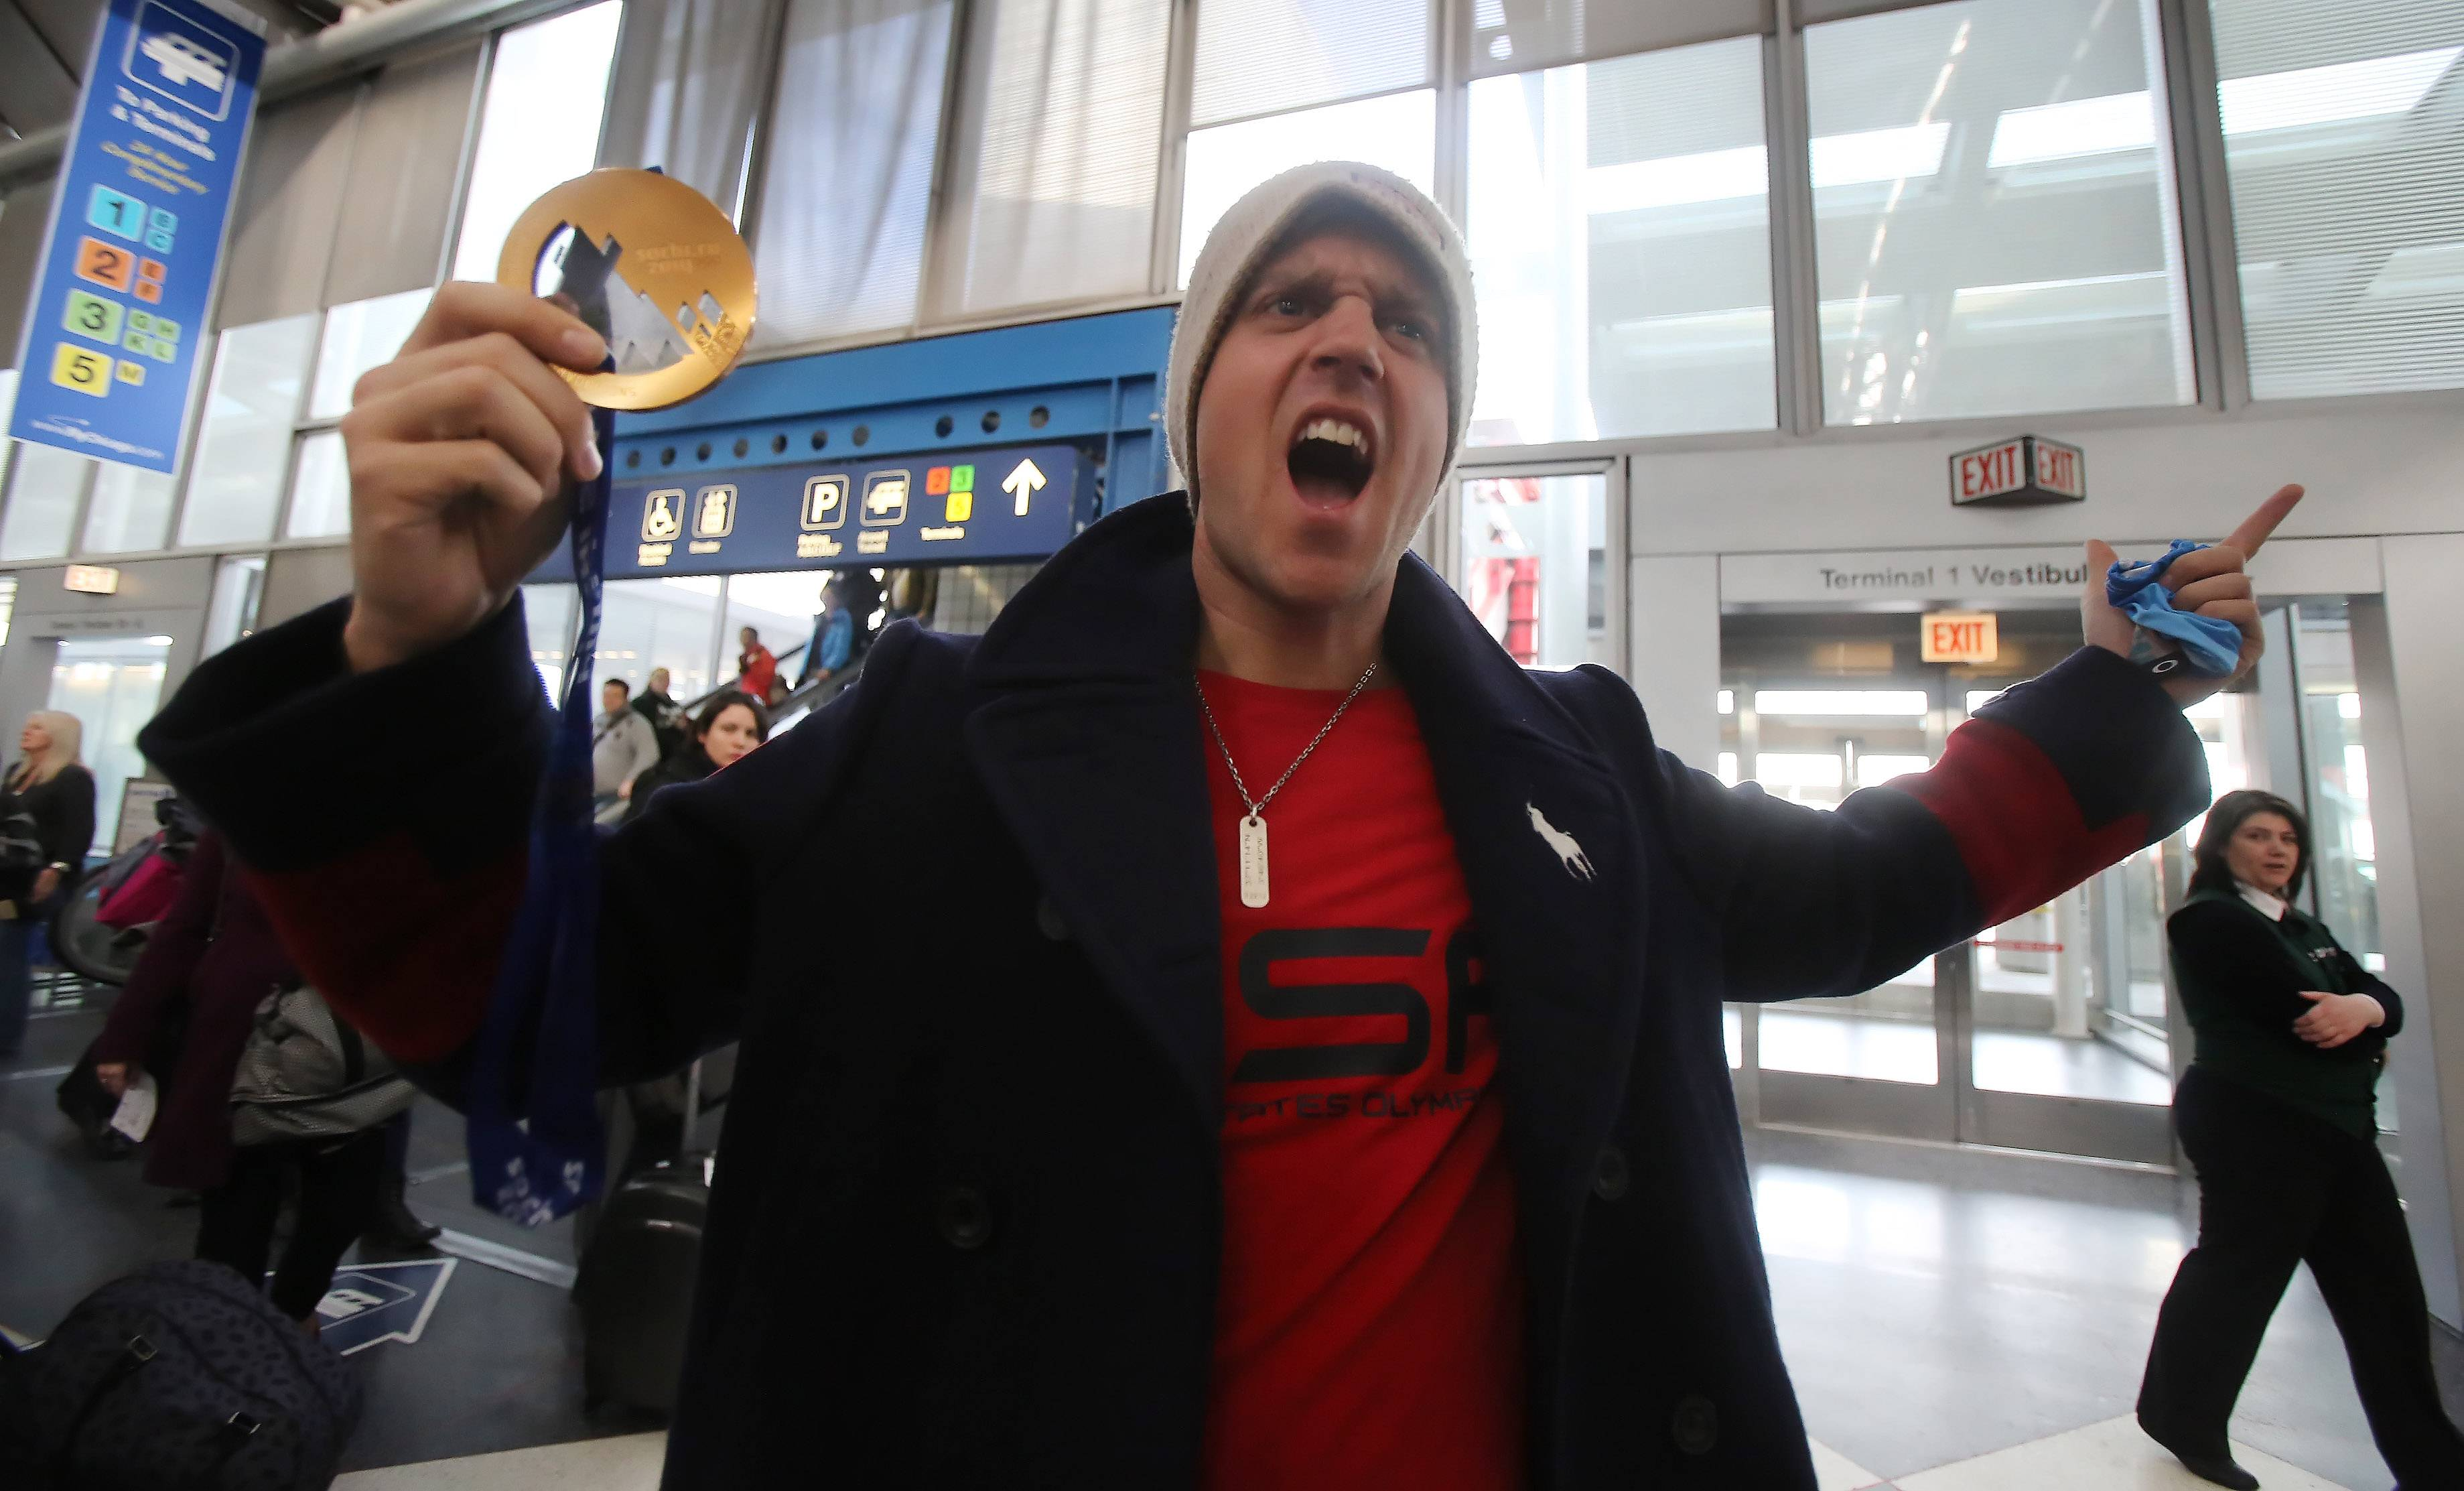 Snowboarder Alex Deibold shows off his bronze medal as about 20 members of Team USA stopped at O'Hare International Airport Monday afternoon on their way home from the 2014 Winter Olympics in Sochi, Russia.